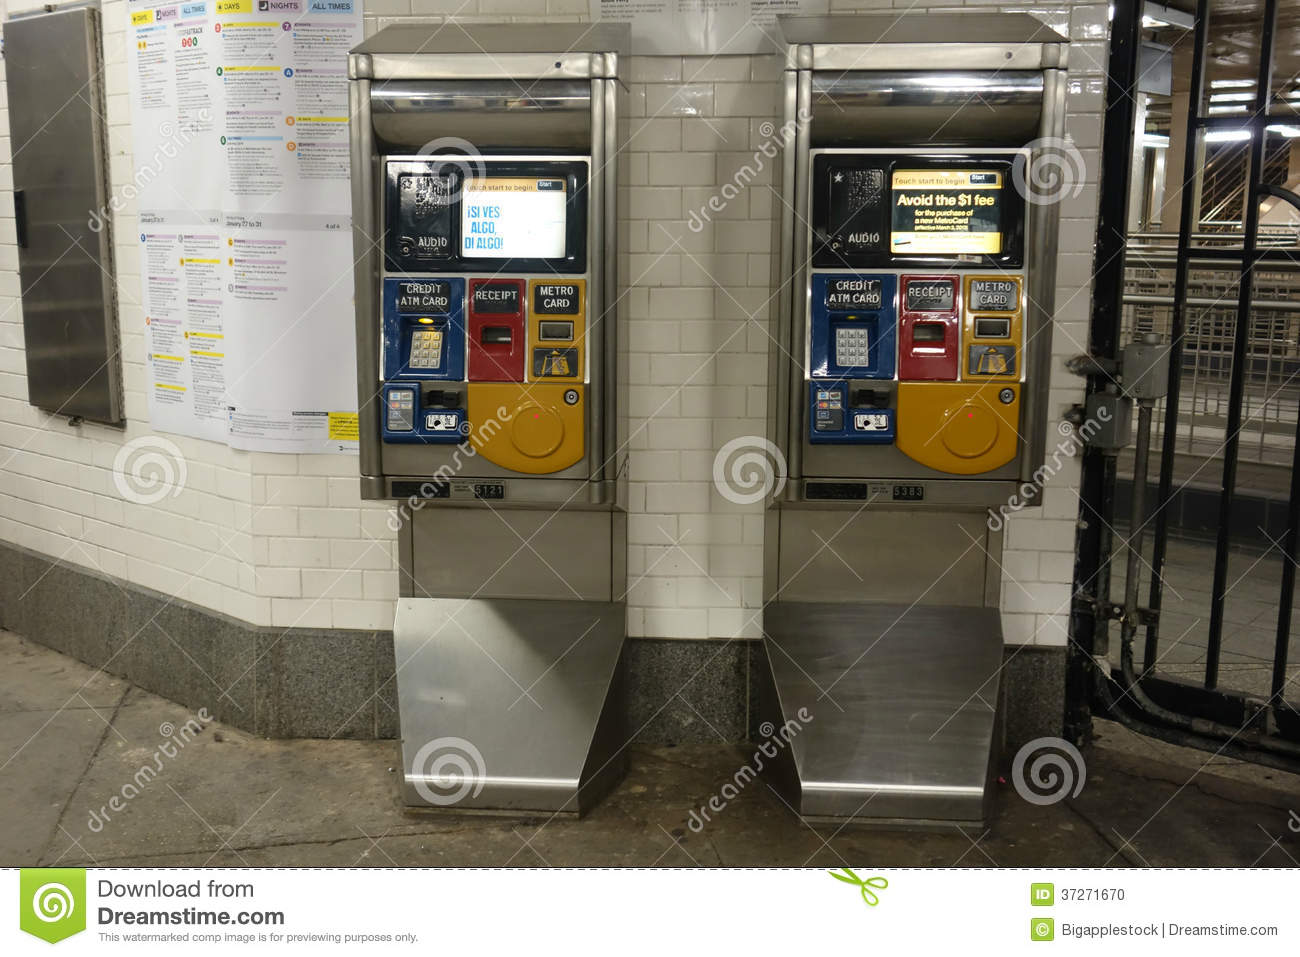 Credit Union Nyc >> Metrocard Vending Machines Editorial Image - Image: 37271670